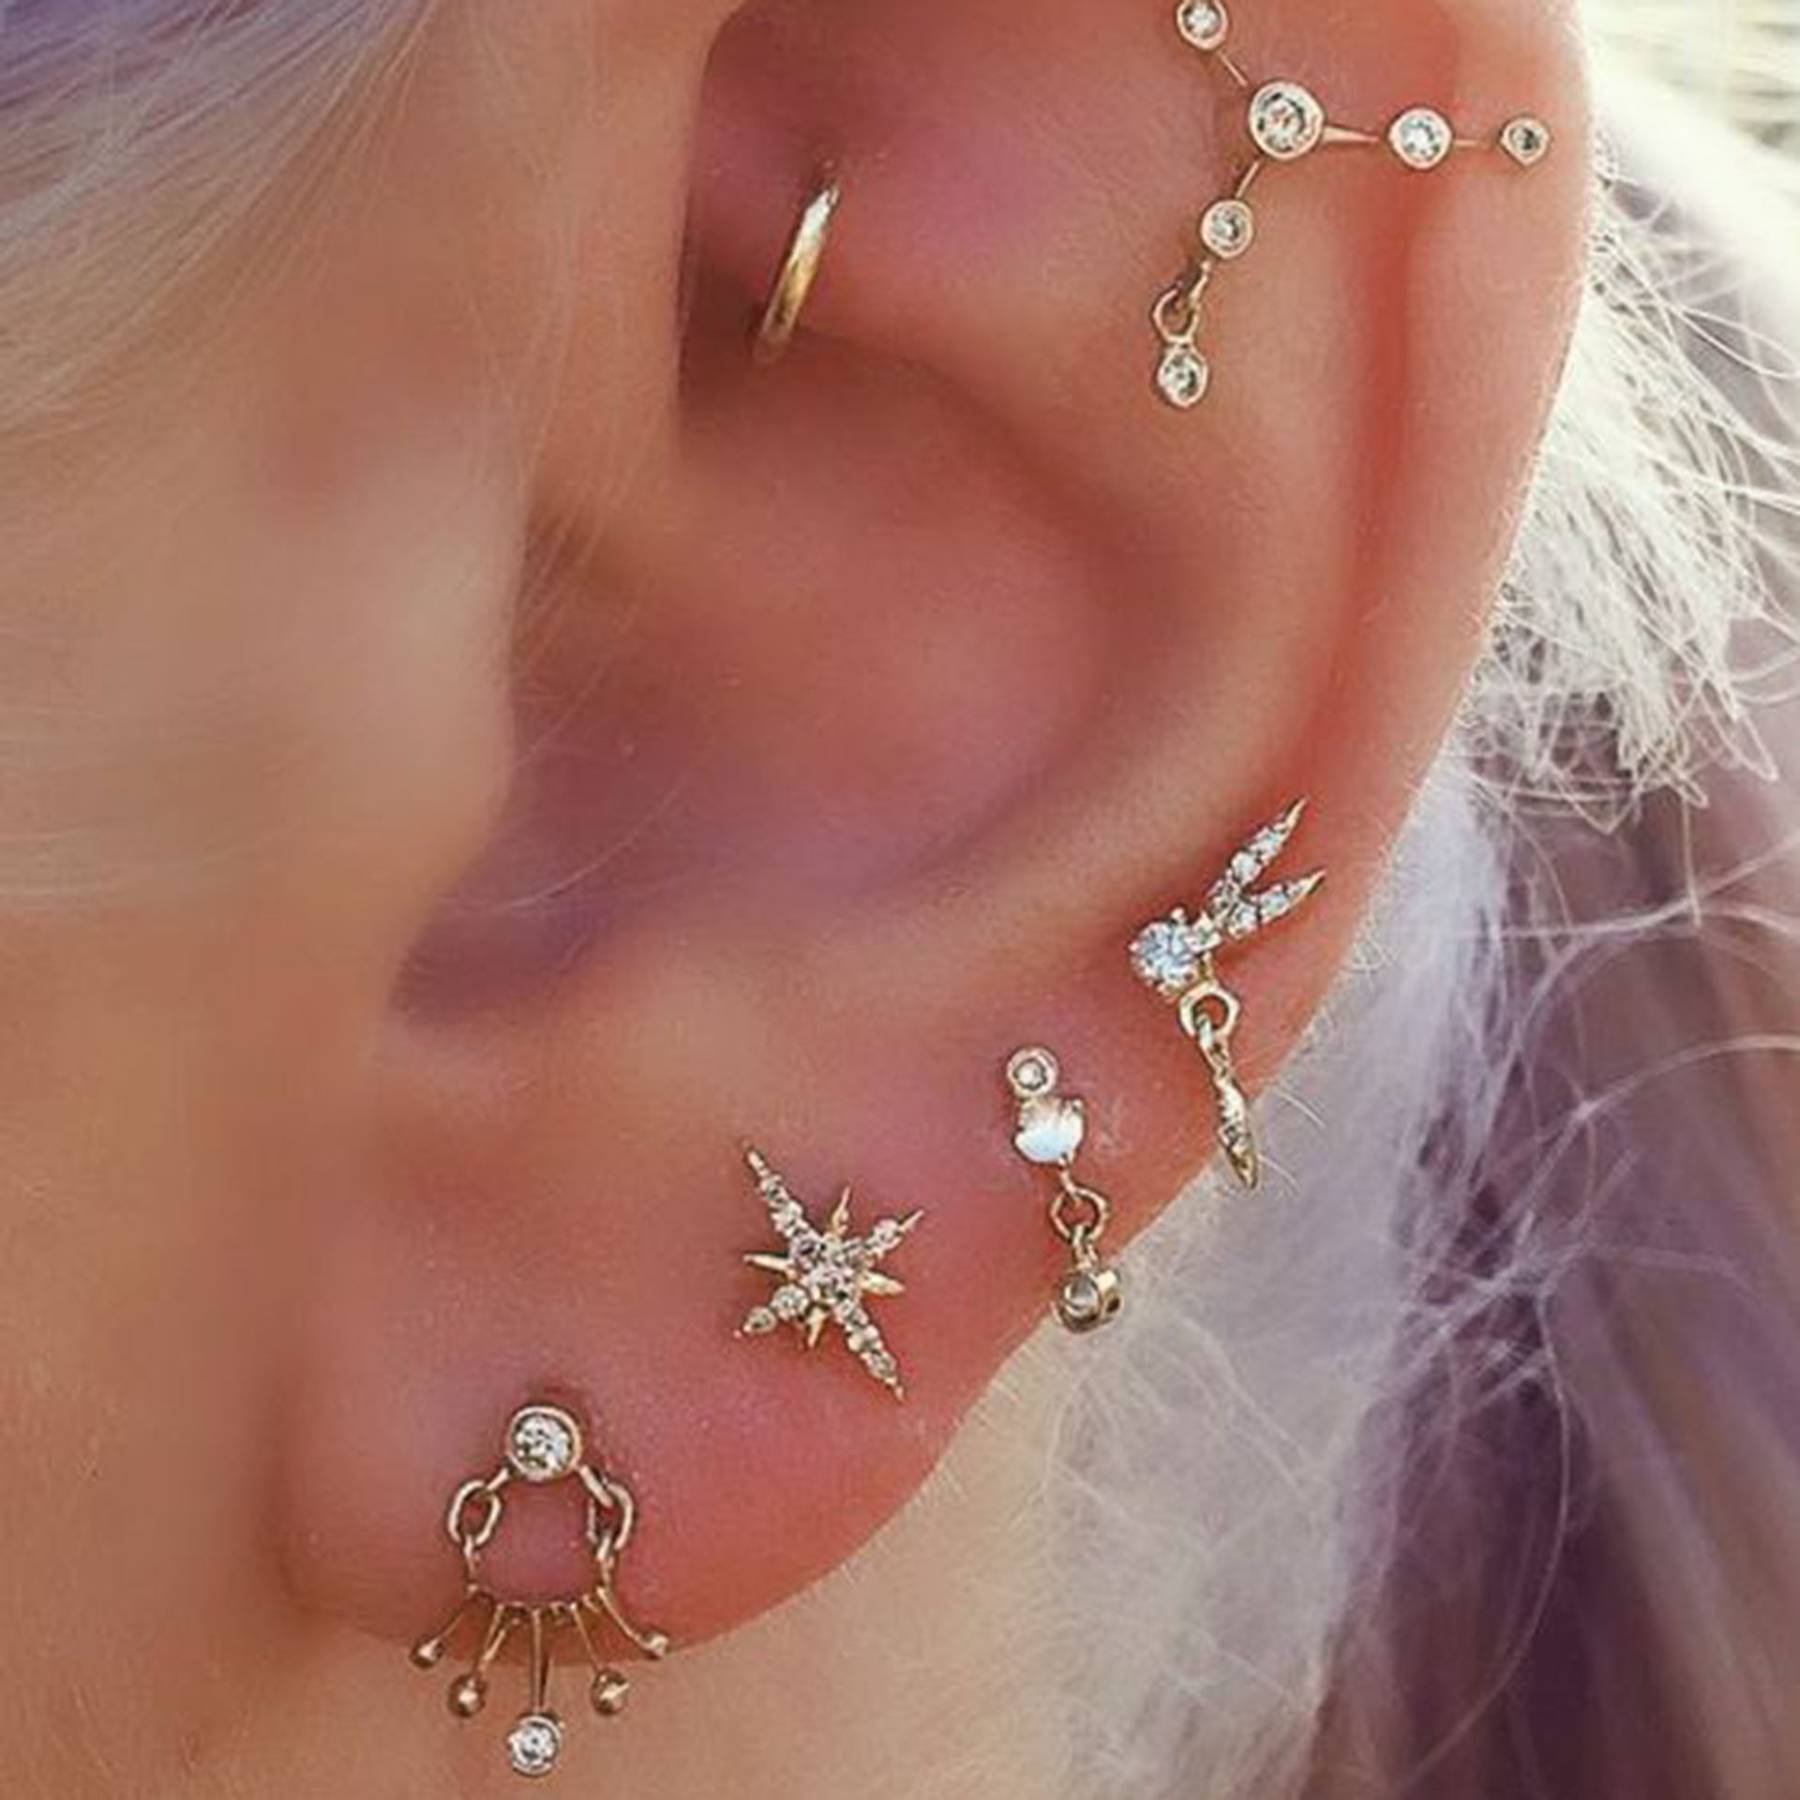 Earring Trends 2019 The Earrings That Will Be Trending This